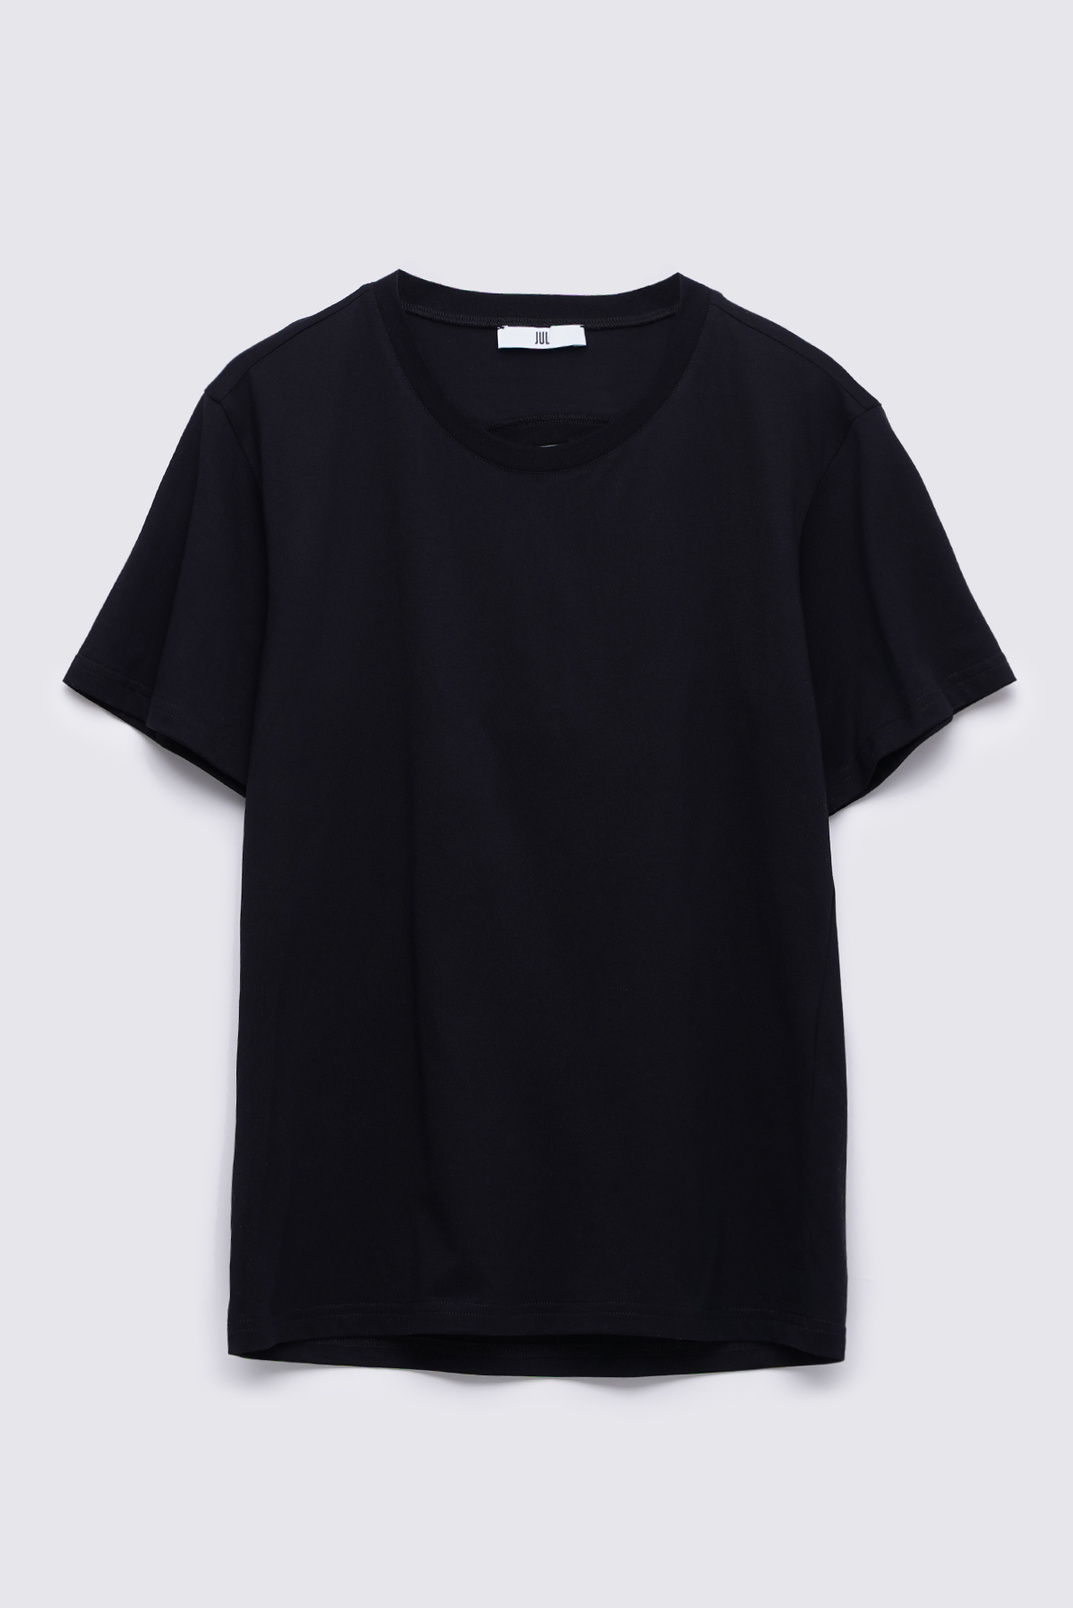 T-shirt with a neckline on the back, Black, S